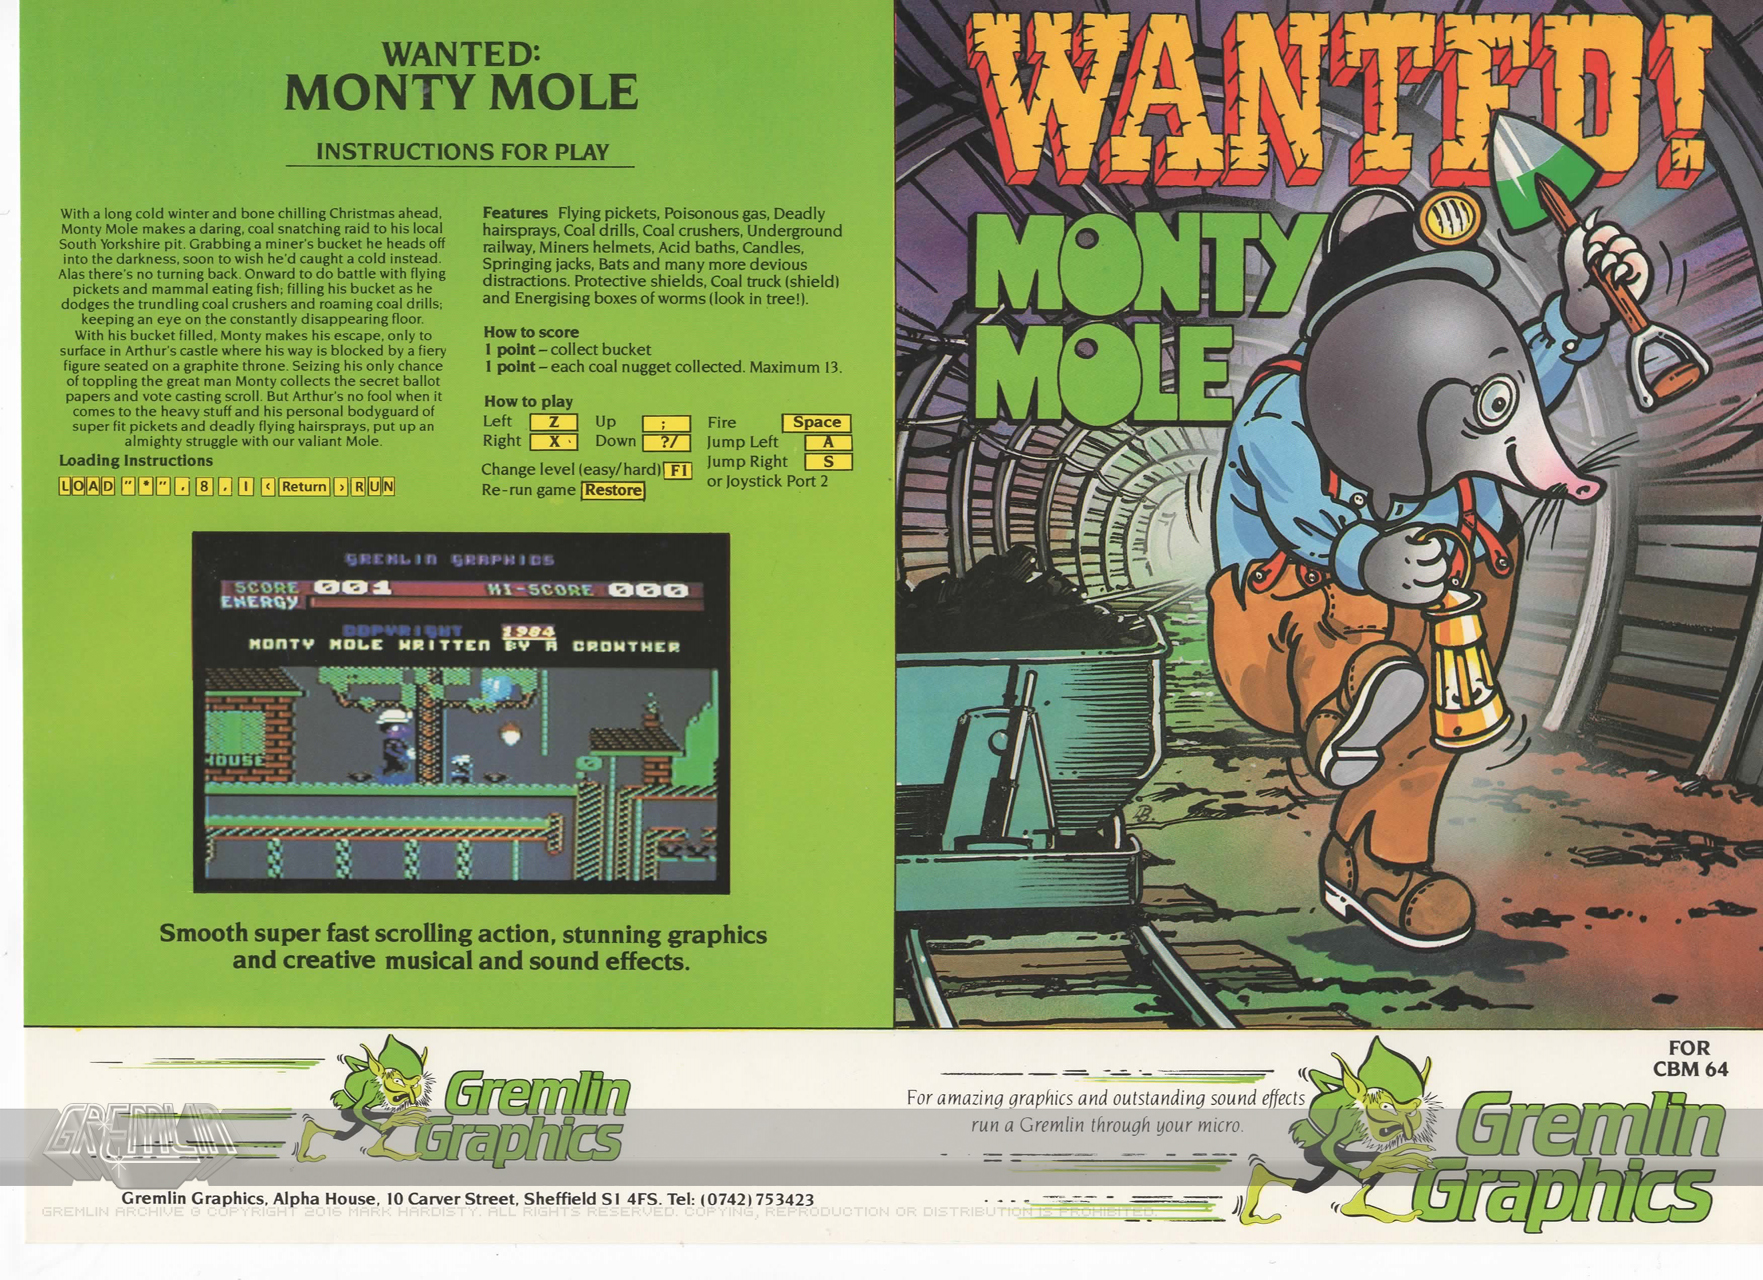 Rare Wanted: Monty Mole C64 Disk Inlay